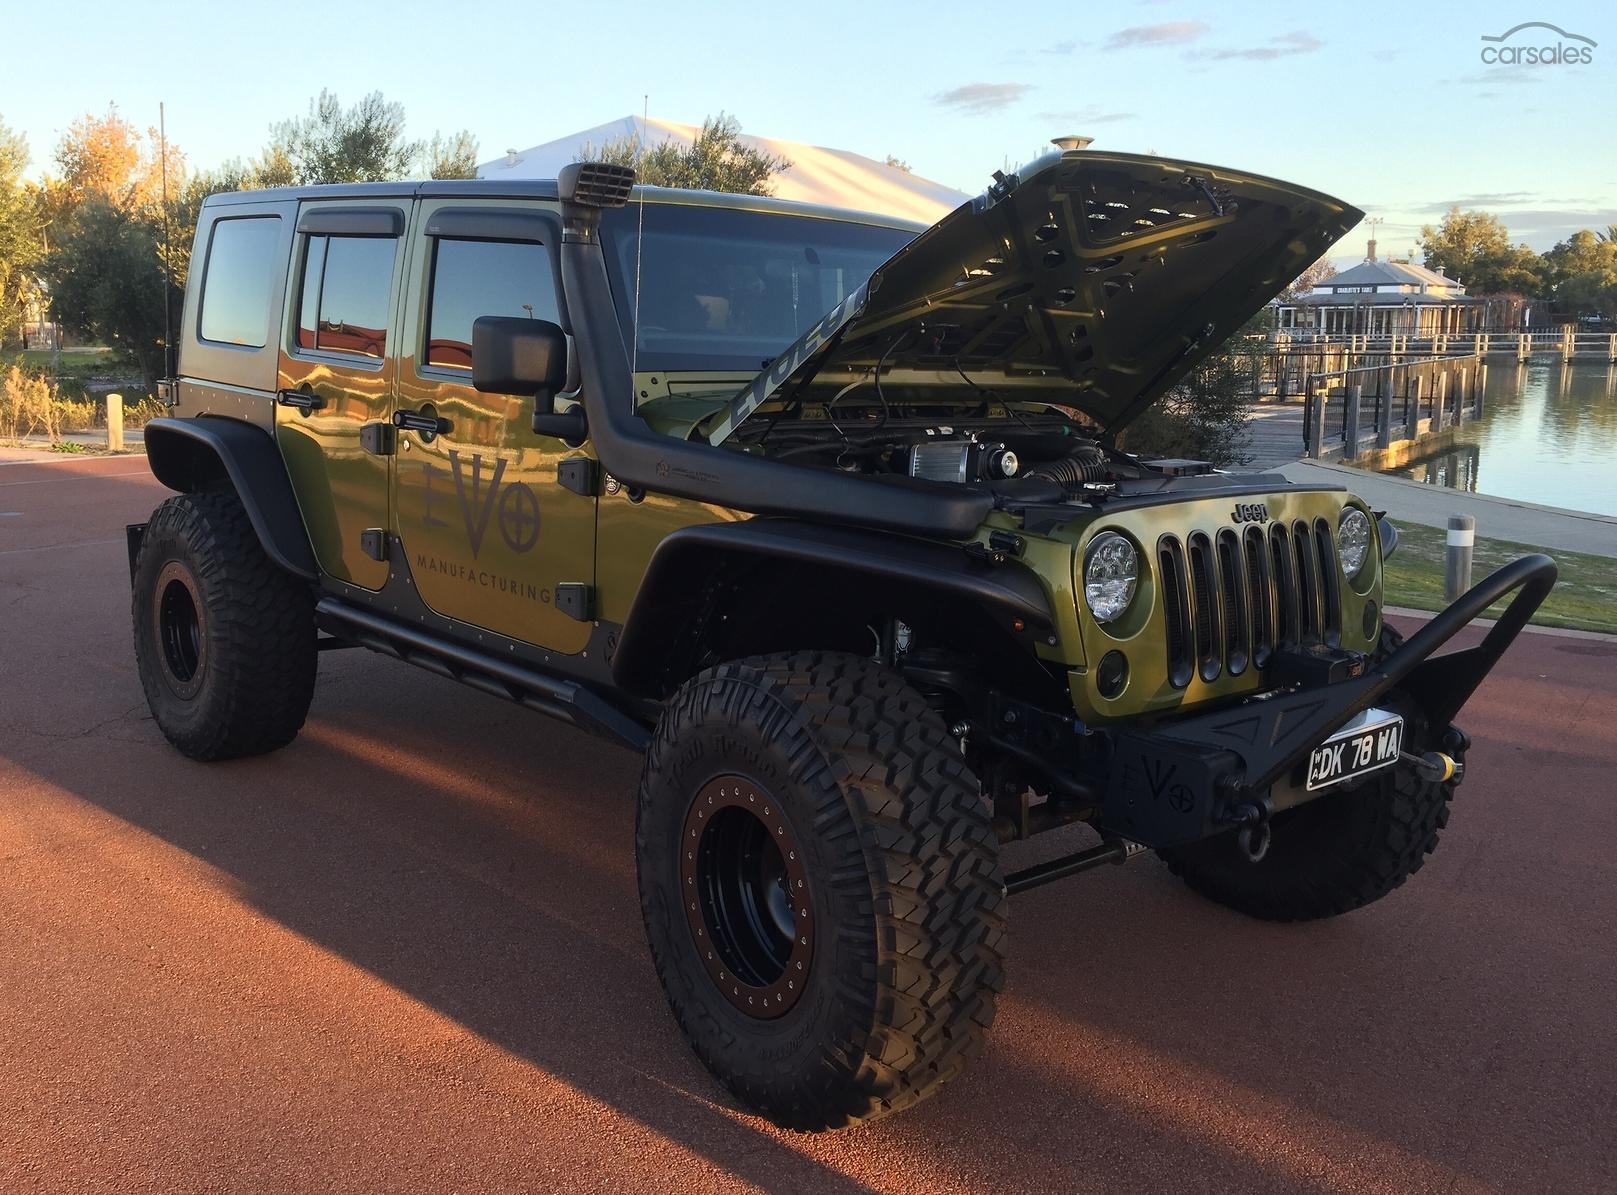 2007 Jeep Wrangler Unlimited Sport Auto 4x4 Sse Ad 5625941 River Raider Cage Kit